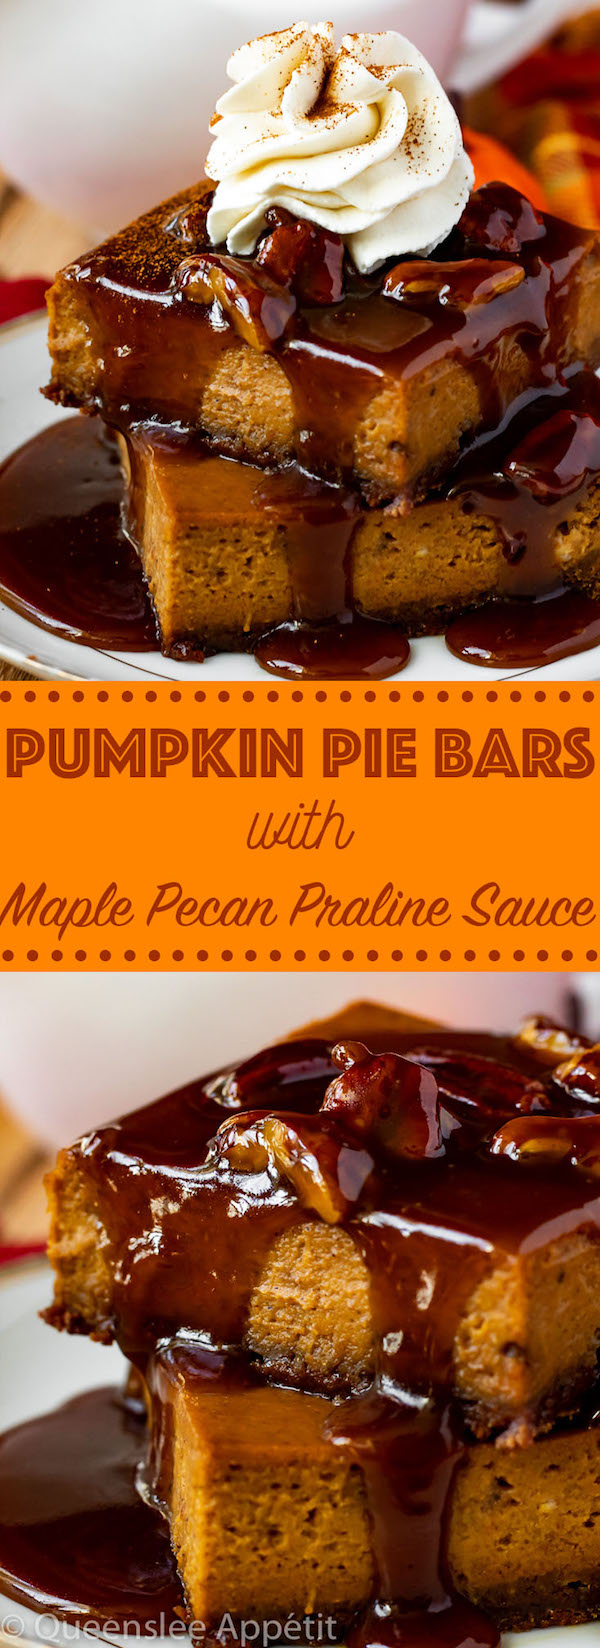 These Pumpkin Pie Bars have a spiced gingersnap crust and are topped with an irresistible Maple Pecan Praline Sauce! These bars are simple, delicious and a perfect dessert for Thanksgiving!